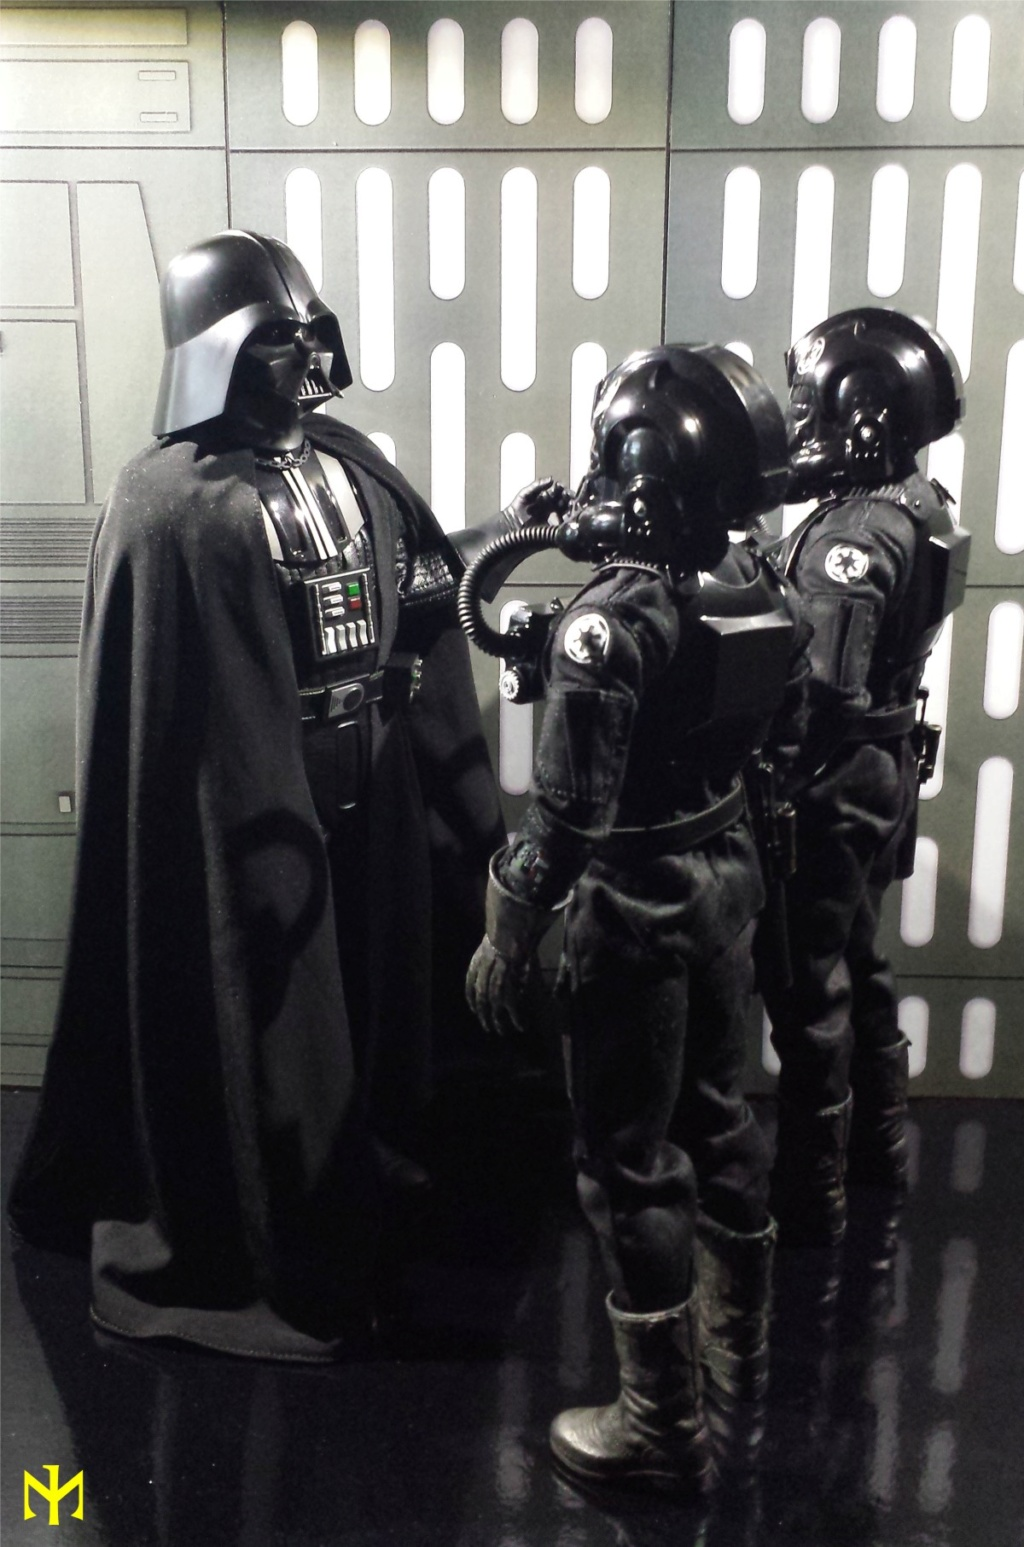 Star Wars Darth Vader Customs Cvader23